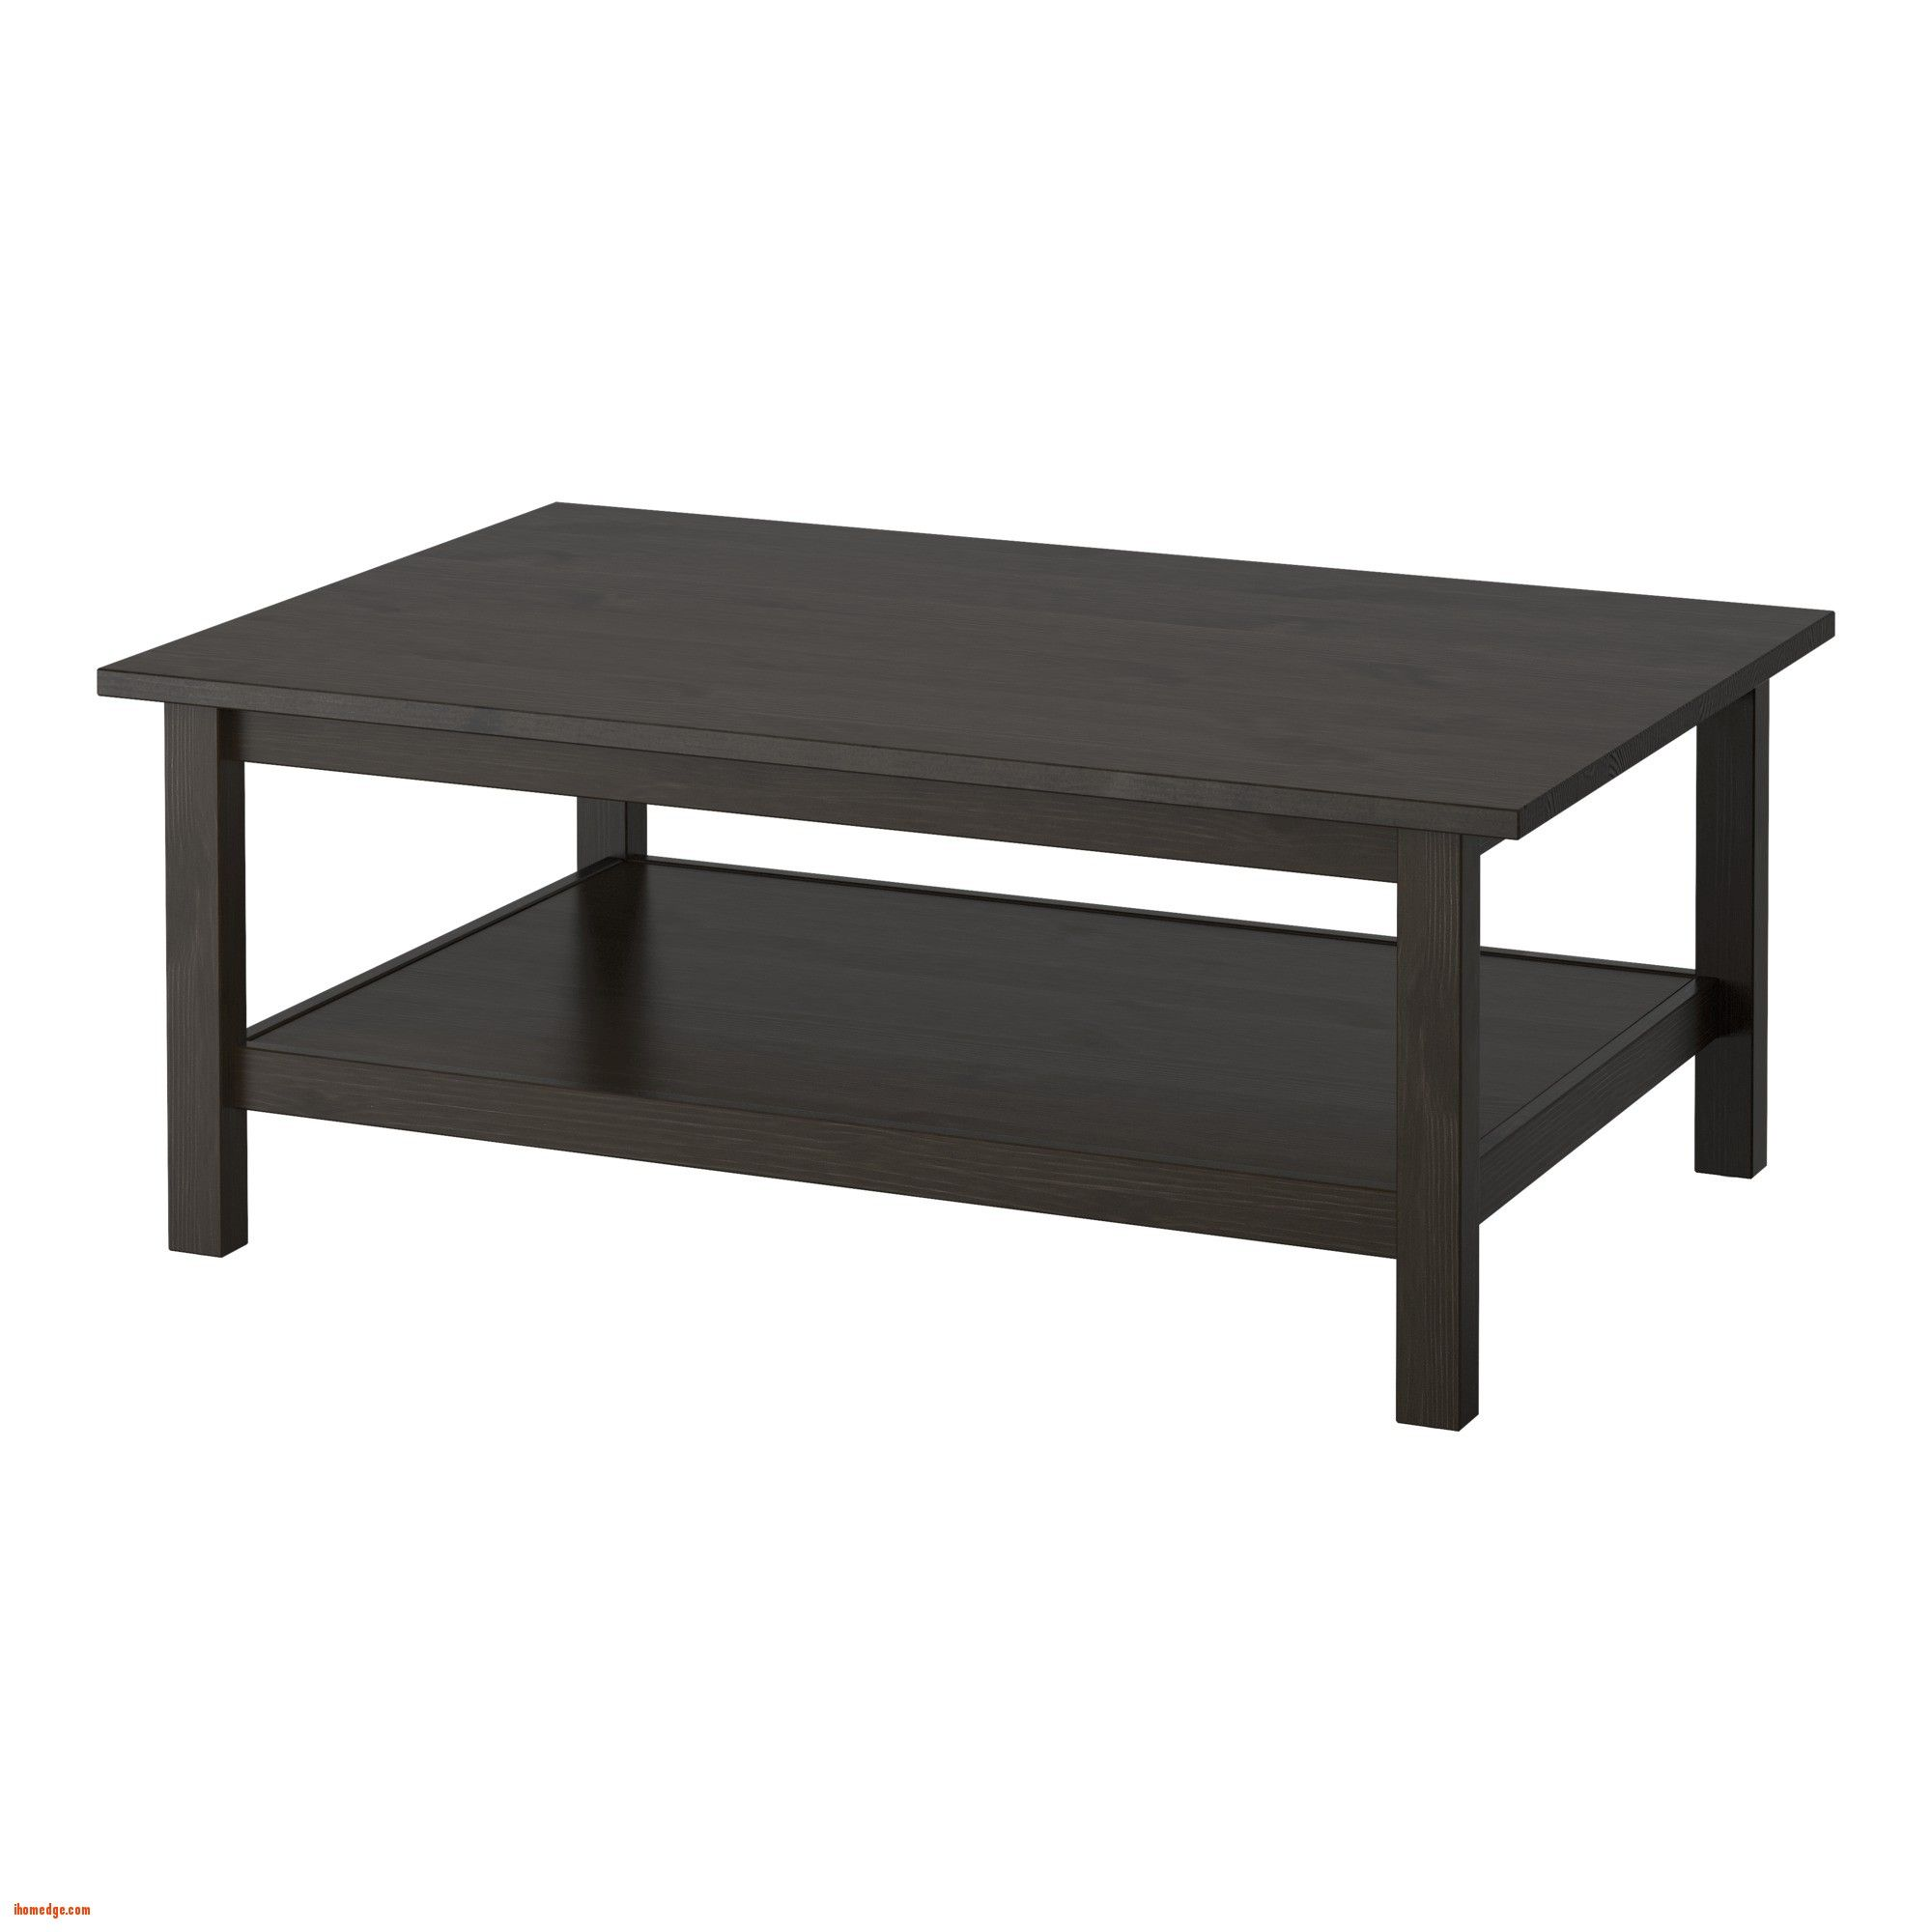 Fine Beautiful Small Gl Coffee Table Ikea Hemnes Solid Wood Has A Natural Feel Http Ihomedge 4712